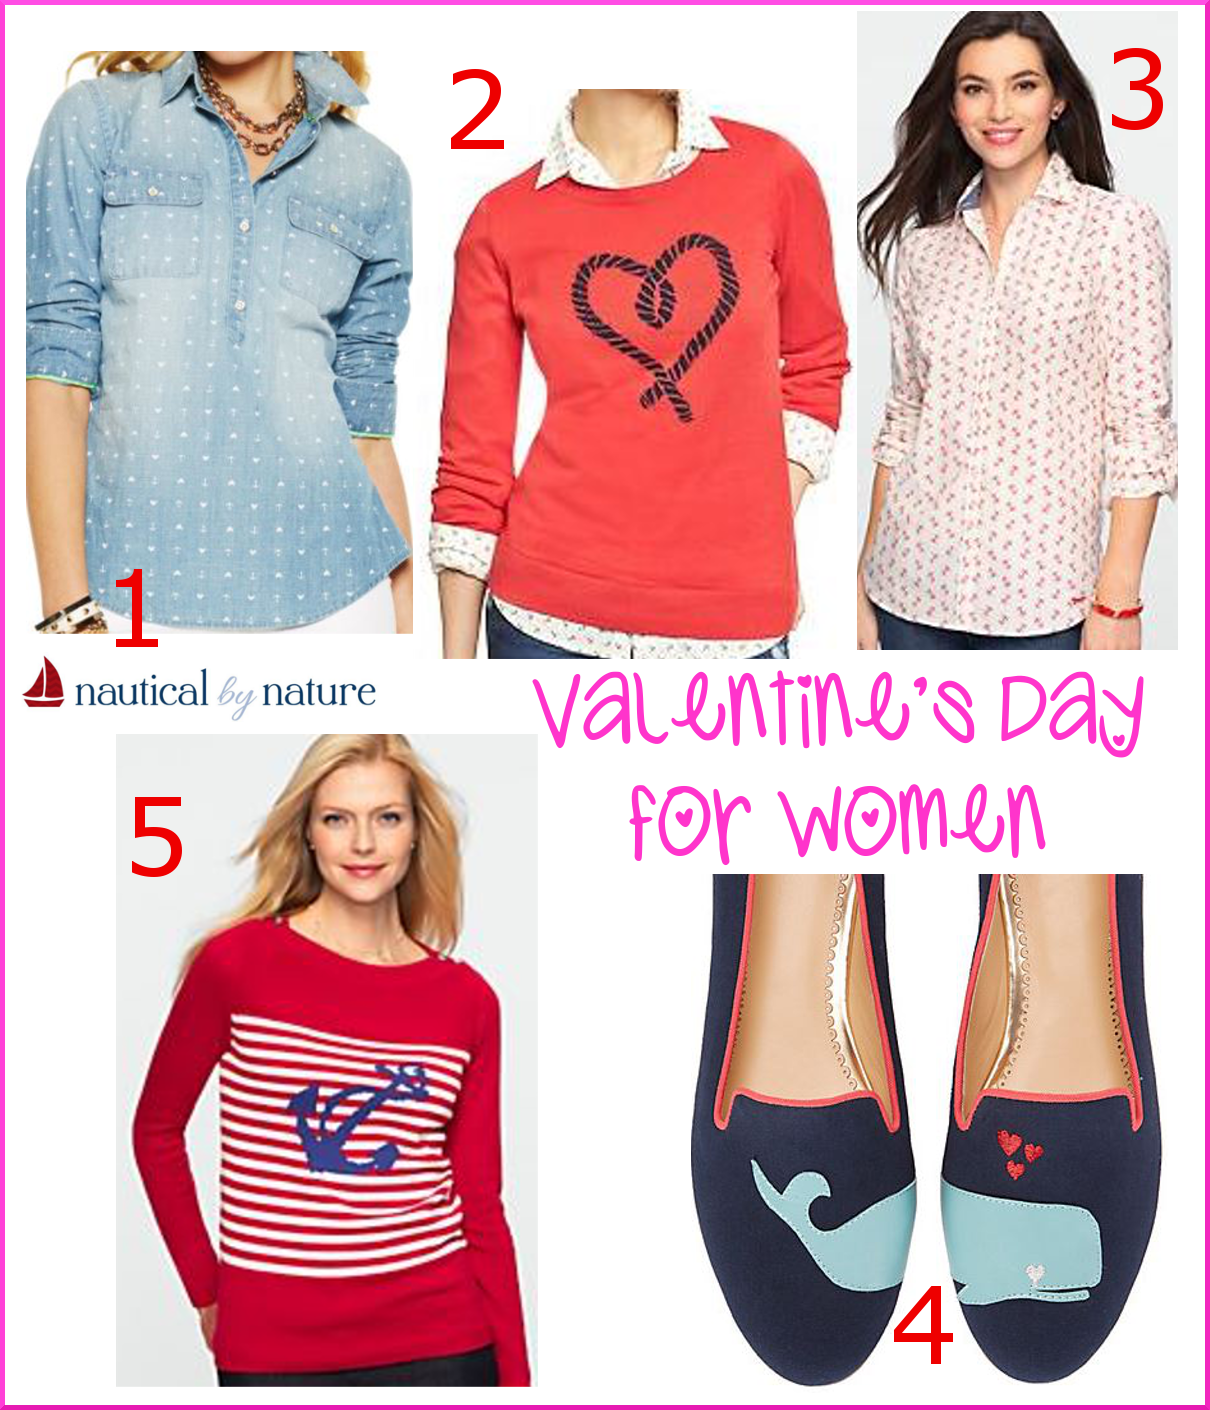 Nautical by Nature | Nautical Valentine's Day outfit ideas for women